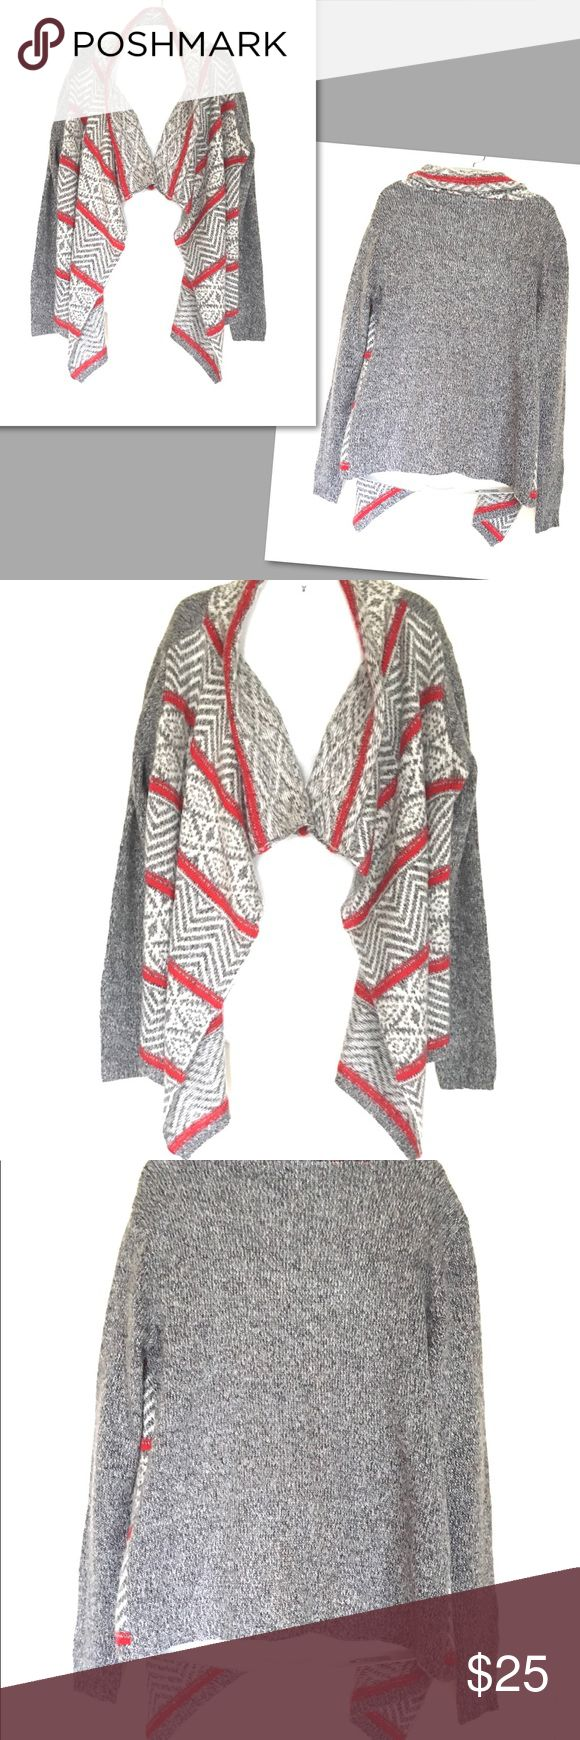 American Eagle Outfitters Long Wrap Sweater- S/P American Eagle Outfitters Long Wrap Aztec / Tribal Print Sweater- S/P Ask for measurements. American Eagle Outfitters Sweaters